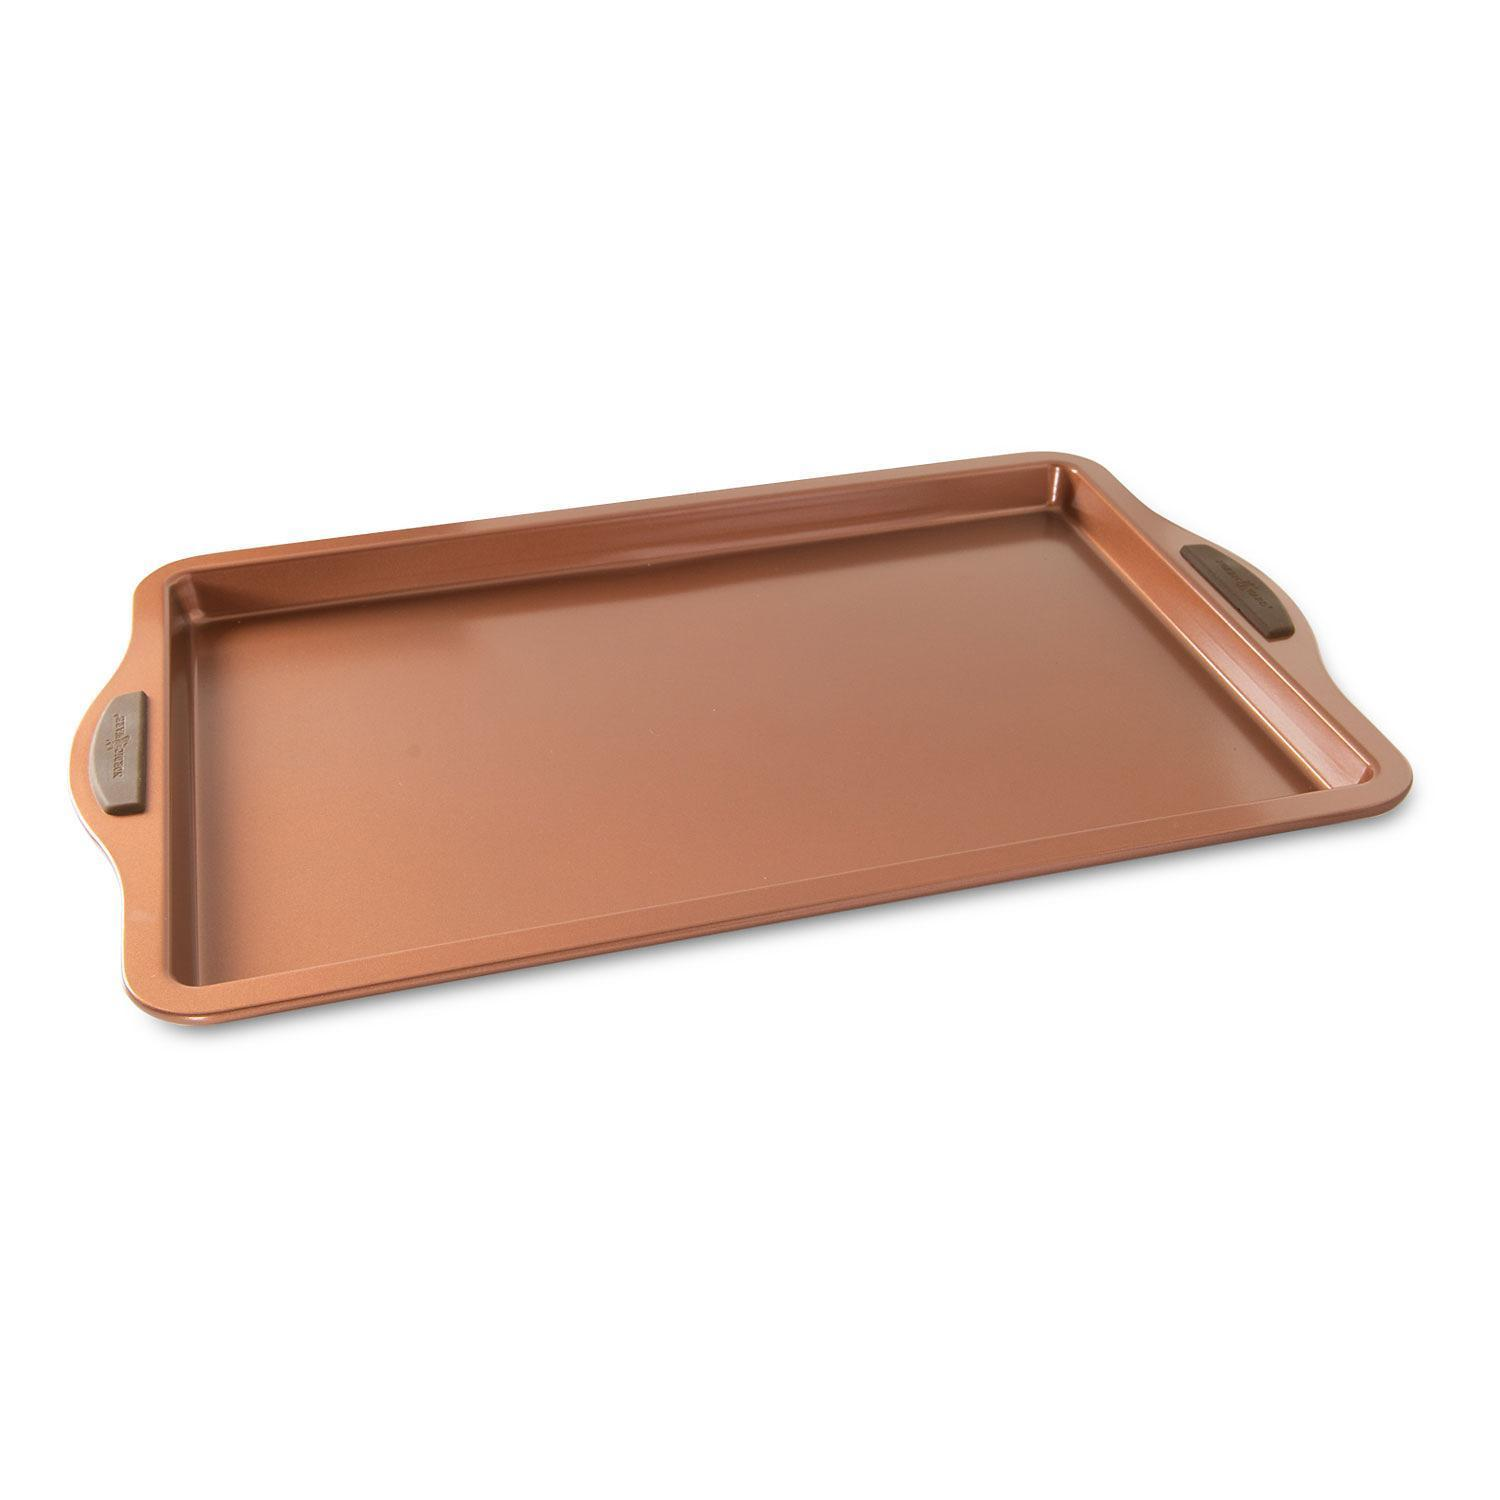 Ware 5-Piece Copper Everyday Bakeware Set-Bakeware Sets 3.24